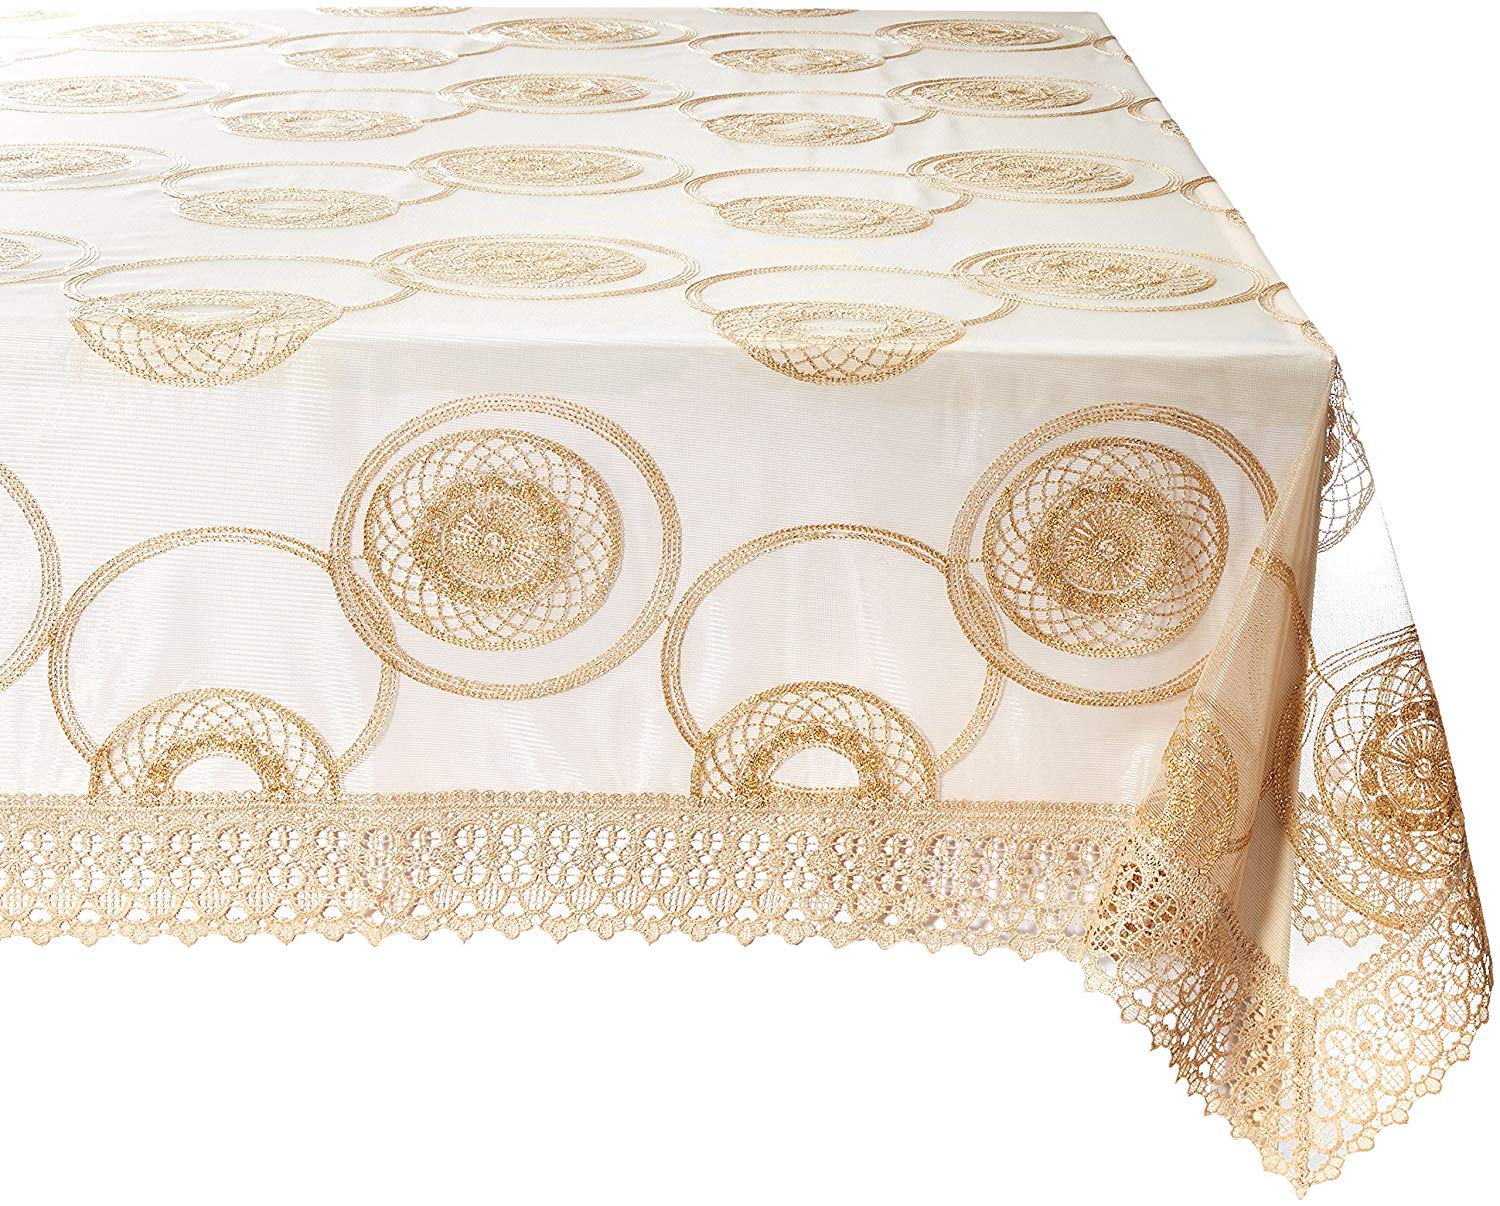 """Violet Linen Marvelous Lace Tablecloth With Embroidered Round Scroll Design, 70"""" x 120"""", Gold"""